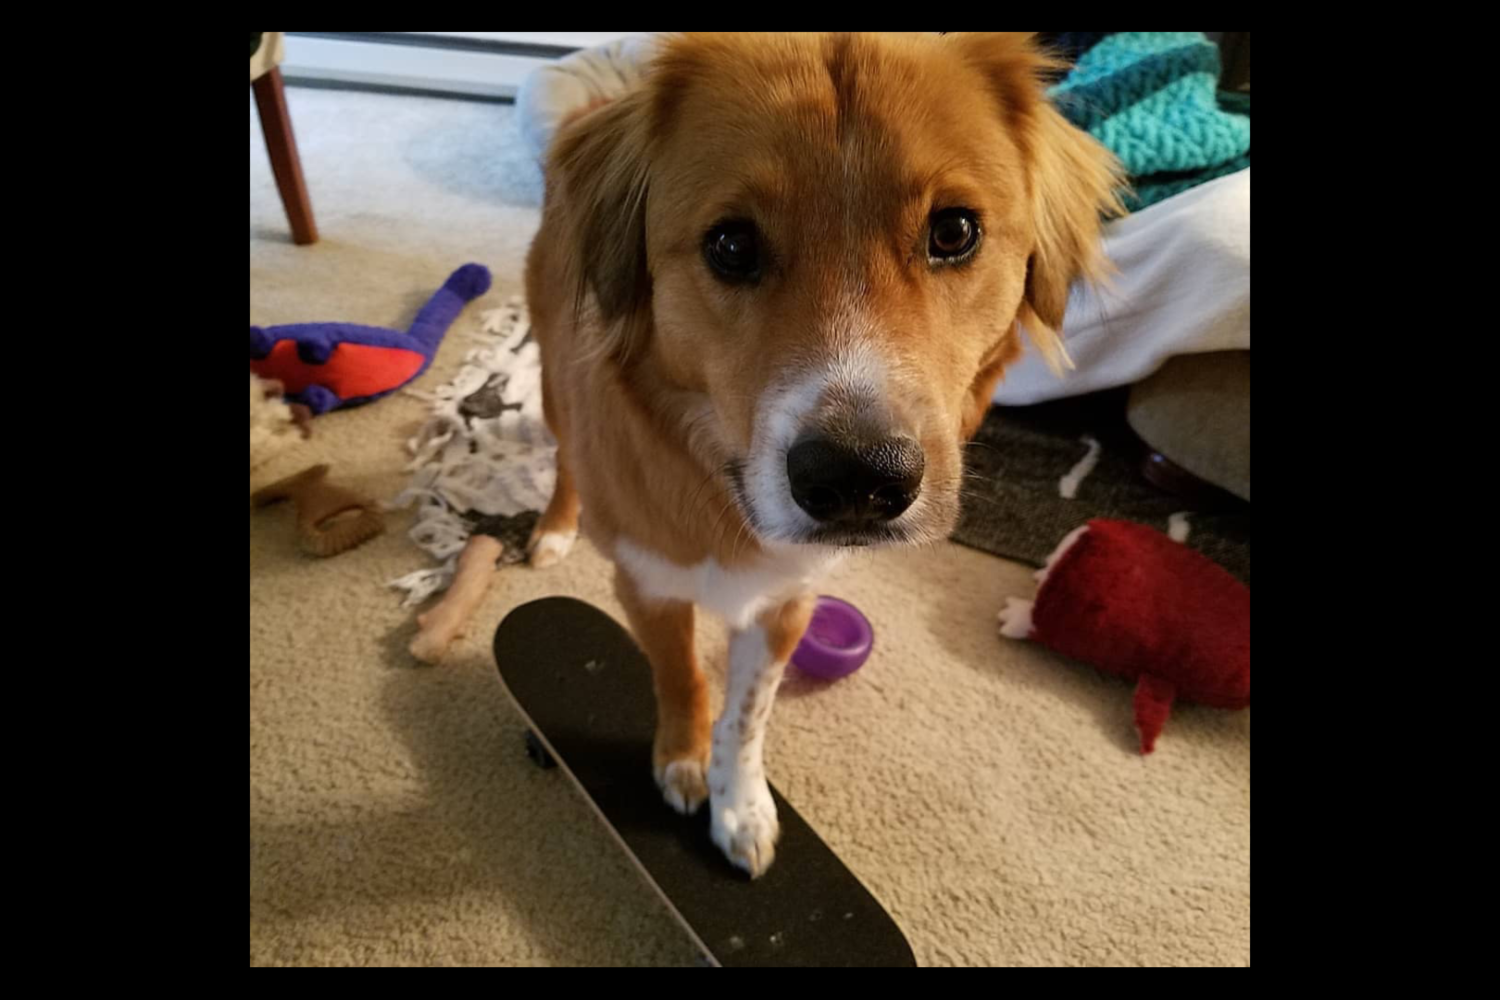 Darrel taught himself to skate on tiny skateboard (Image: Hailey Adair)